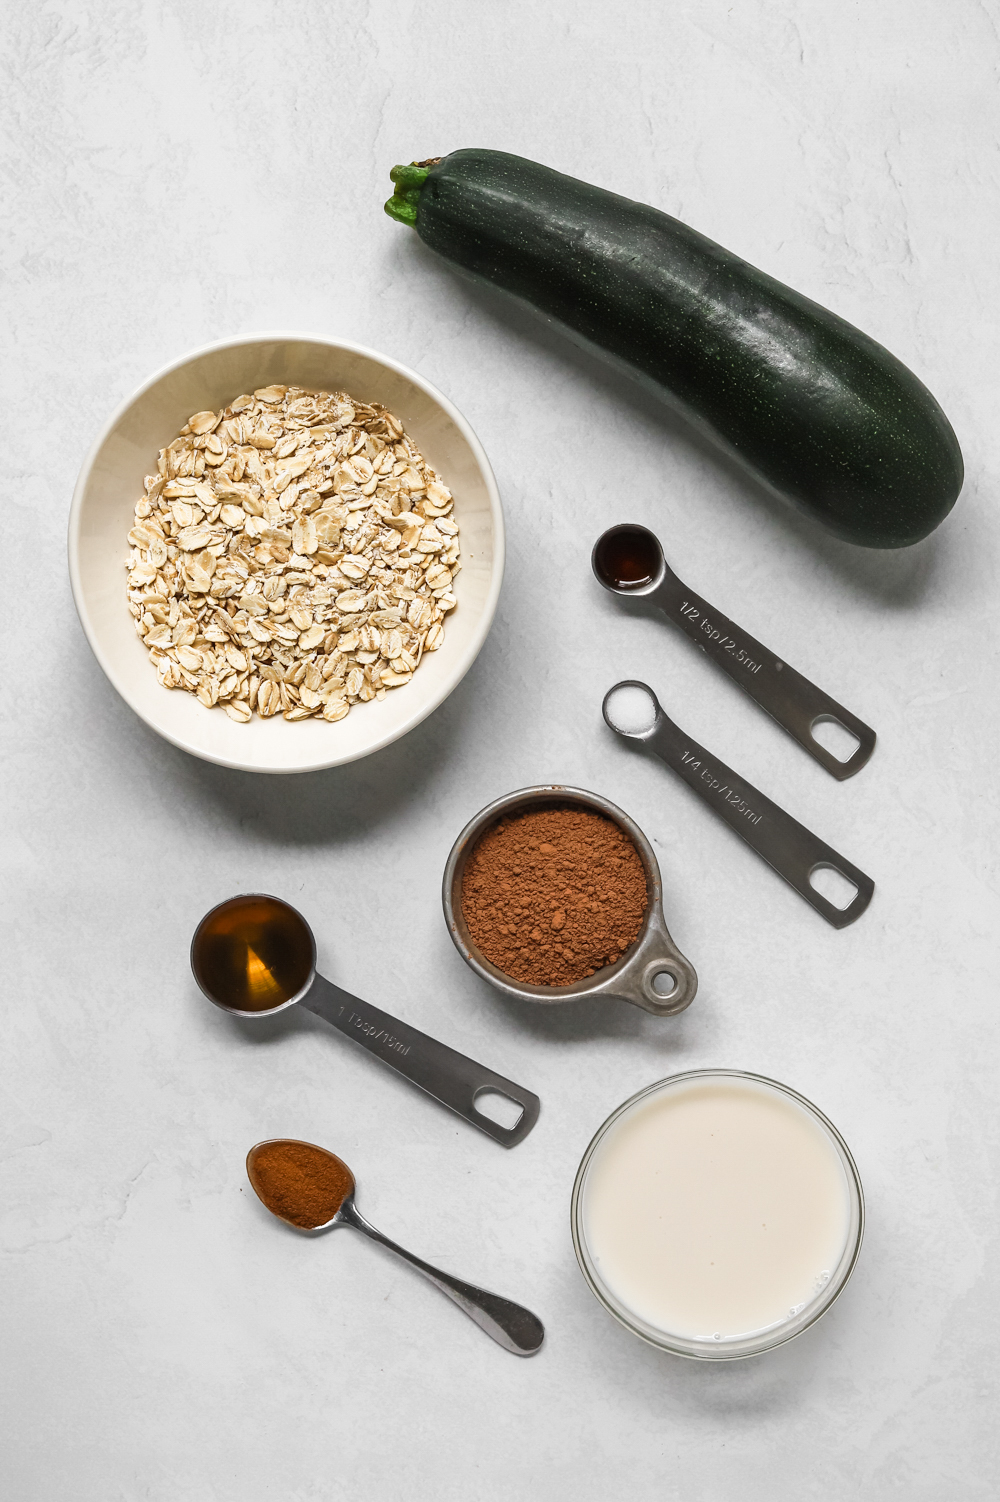 Ingredients to make vegan chocolate zucchini oatmeal: oats, zucchini, vanilla, maple syrup, salt, cinnamon, almond milk.